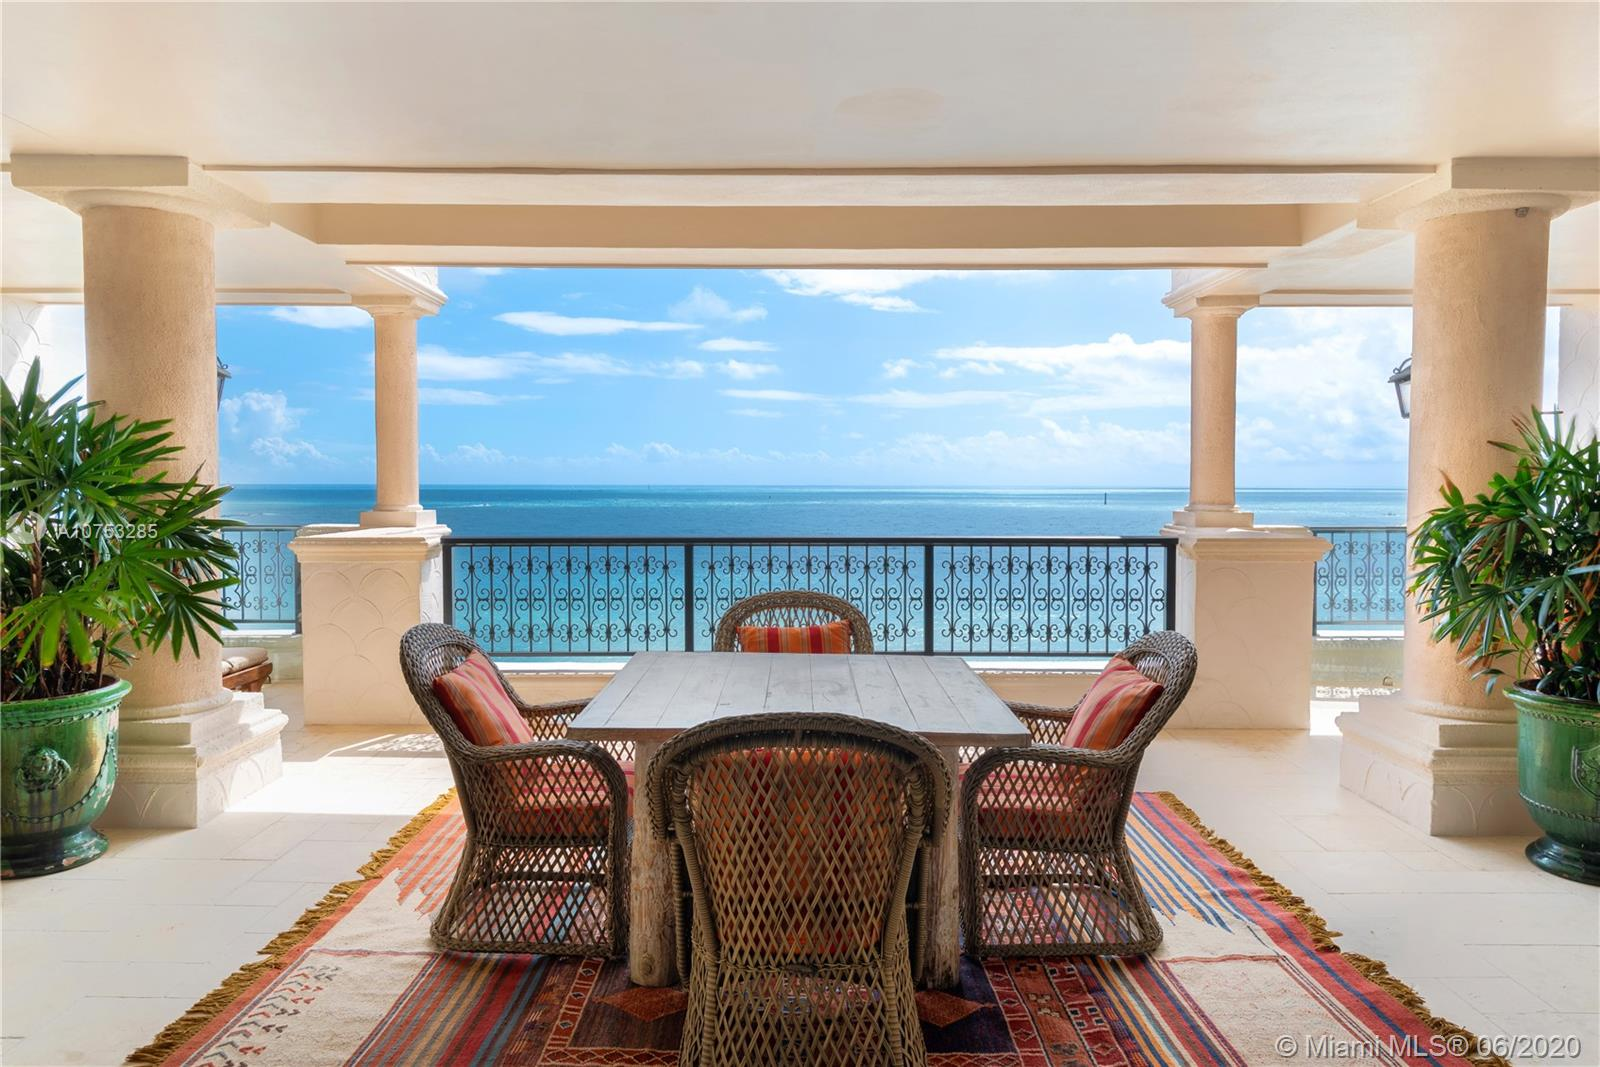 This stunning oceanside lower penthouse offers million-dollar direct ocean views. Enjoy the breathtaking Miami skyline, oceanfront views, and golf course views from every room and balcony. Boasting 5 bedrooms, 5 bathrooms, and 1 half bath, this 6,170 square foot residence offers custom features throughout. Intricate design details include a remarkable fireplace, exposed wooden beams, and custom carved wooden doors in the living room. Gourmet kitchen that features top-of-the-line Wolf and Miele appliances including a Wolf induction burner. Includes two covered garage parking spots and golf cart parking space. Wake up in your principal suite with sensational ocean views, dual closets and a private balcony. Live the ocean front lifestyle dream of Fisher Island.